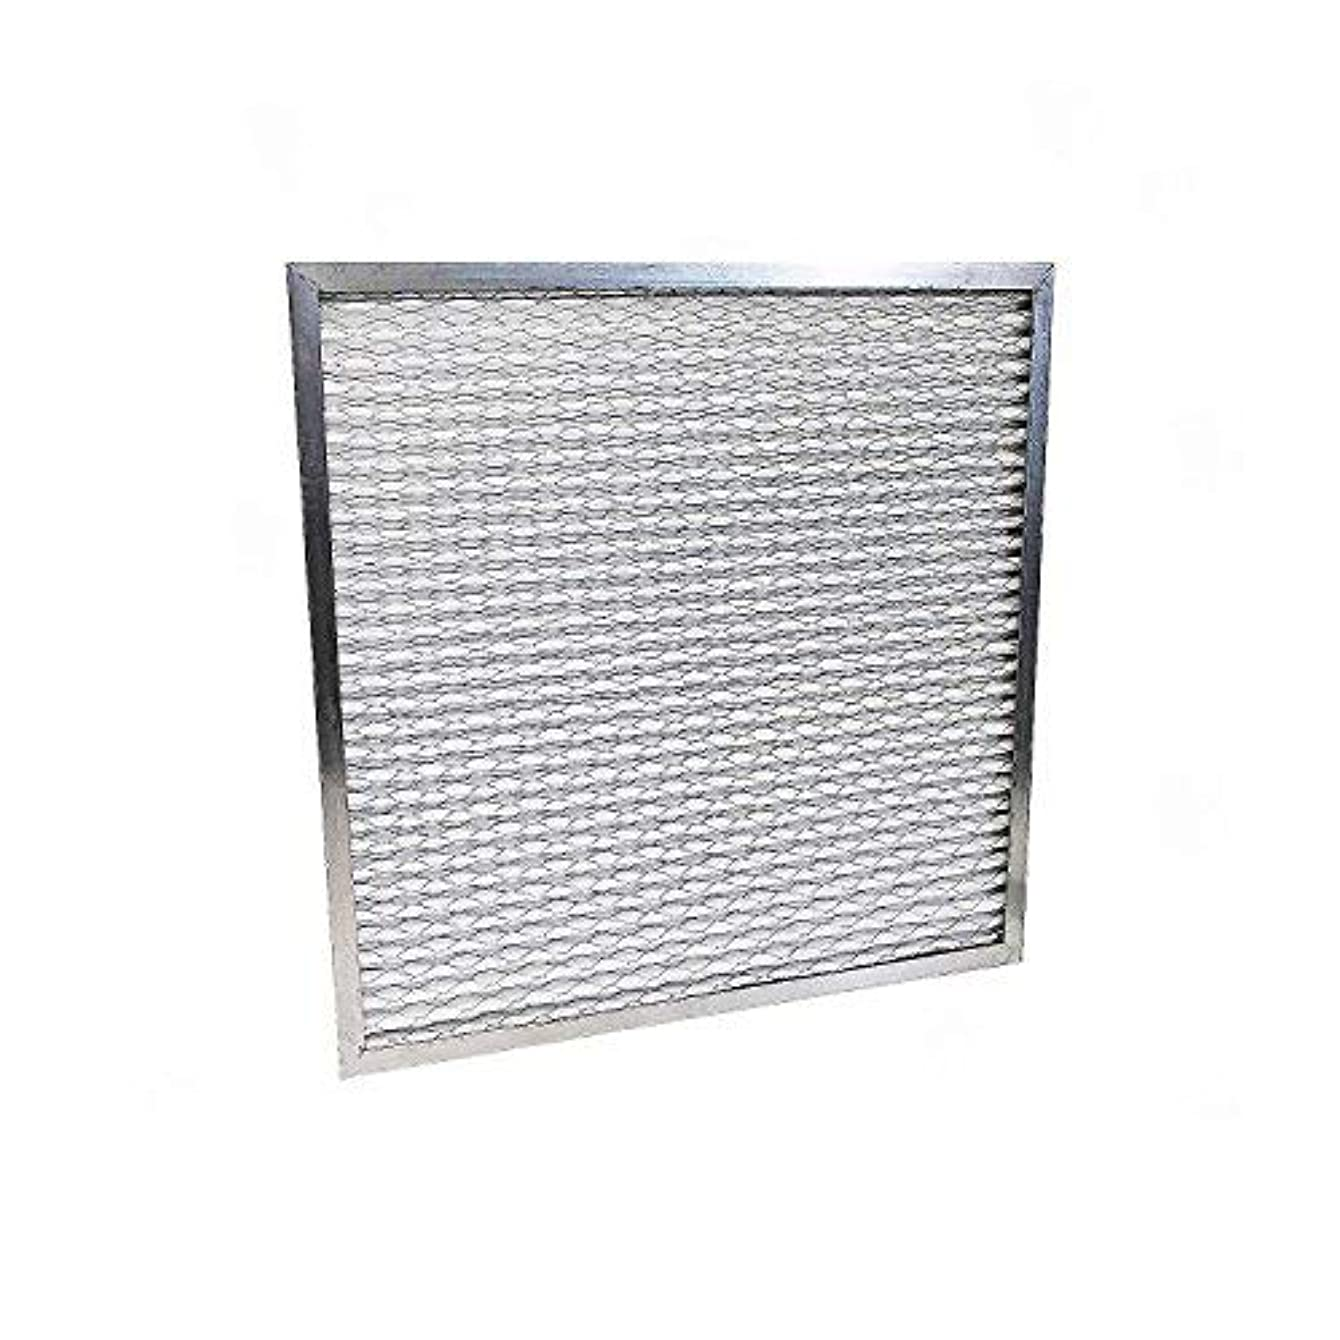 14x14x1 Washable Permanent A/C Furnace Air Filter. Low Air Resistance